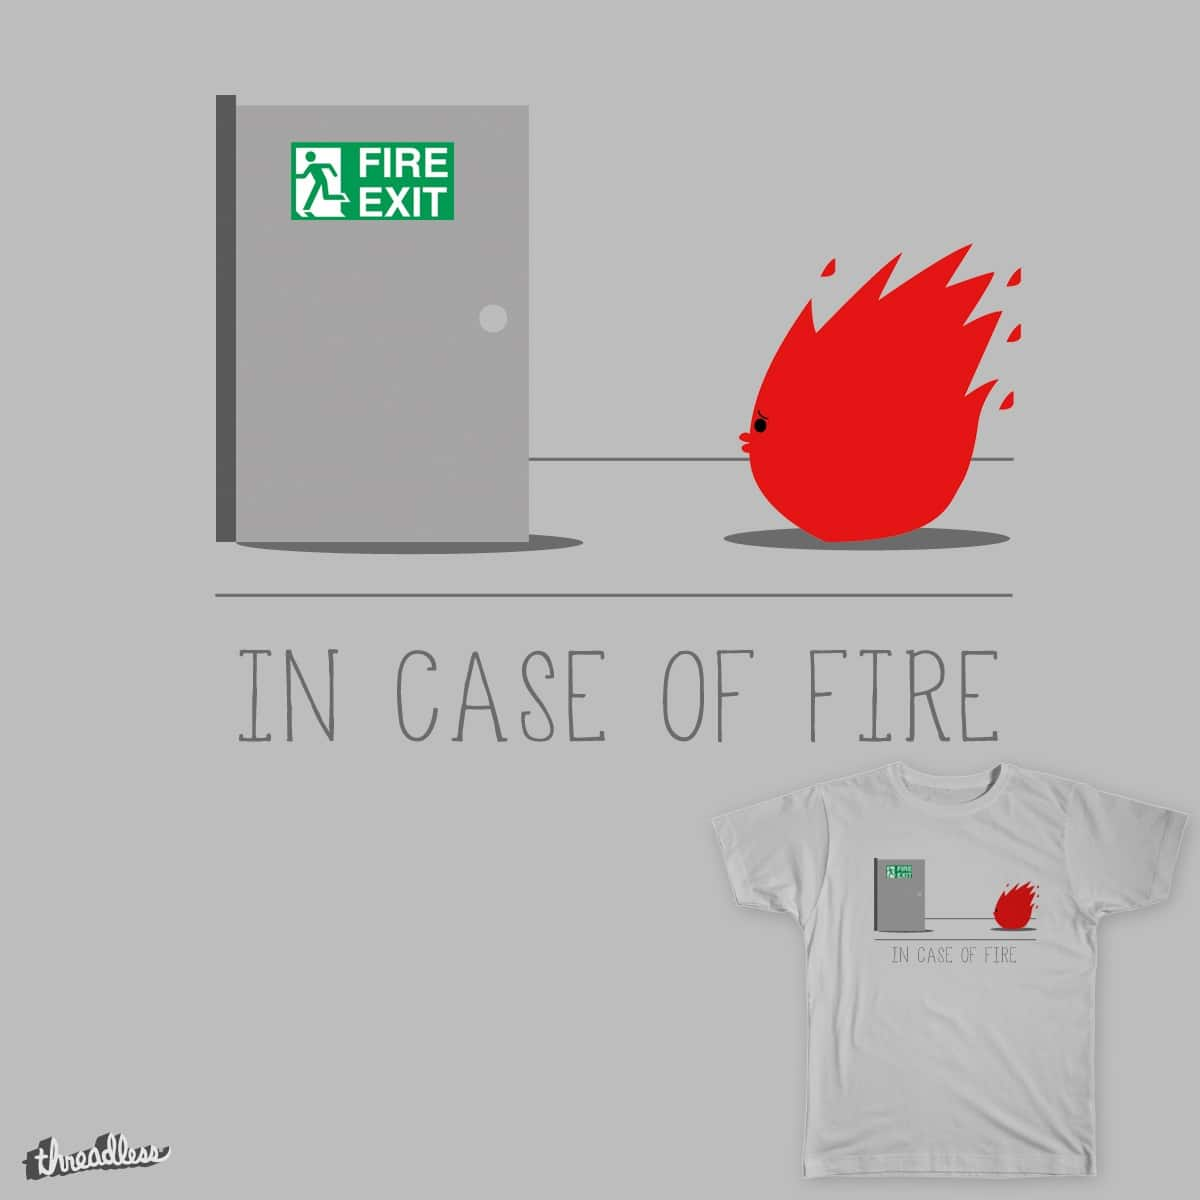 In Case of Fire by piuseliezer on Threadless